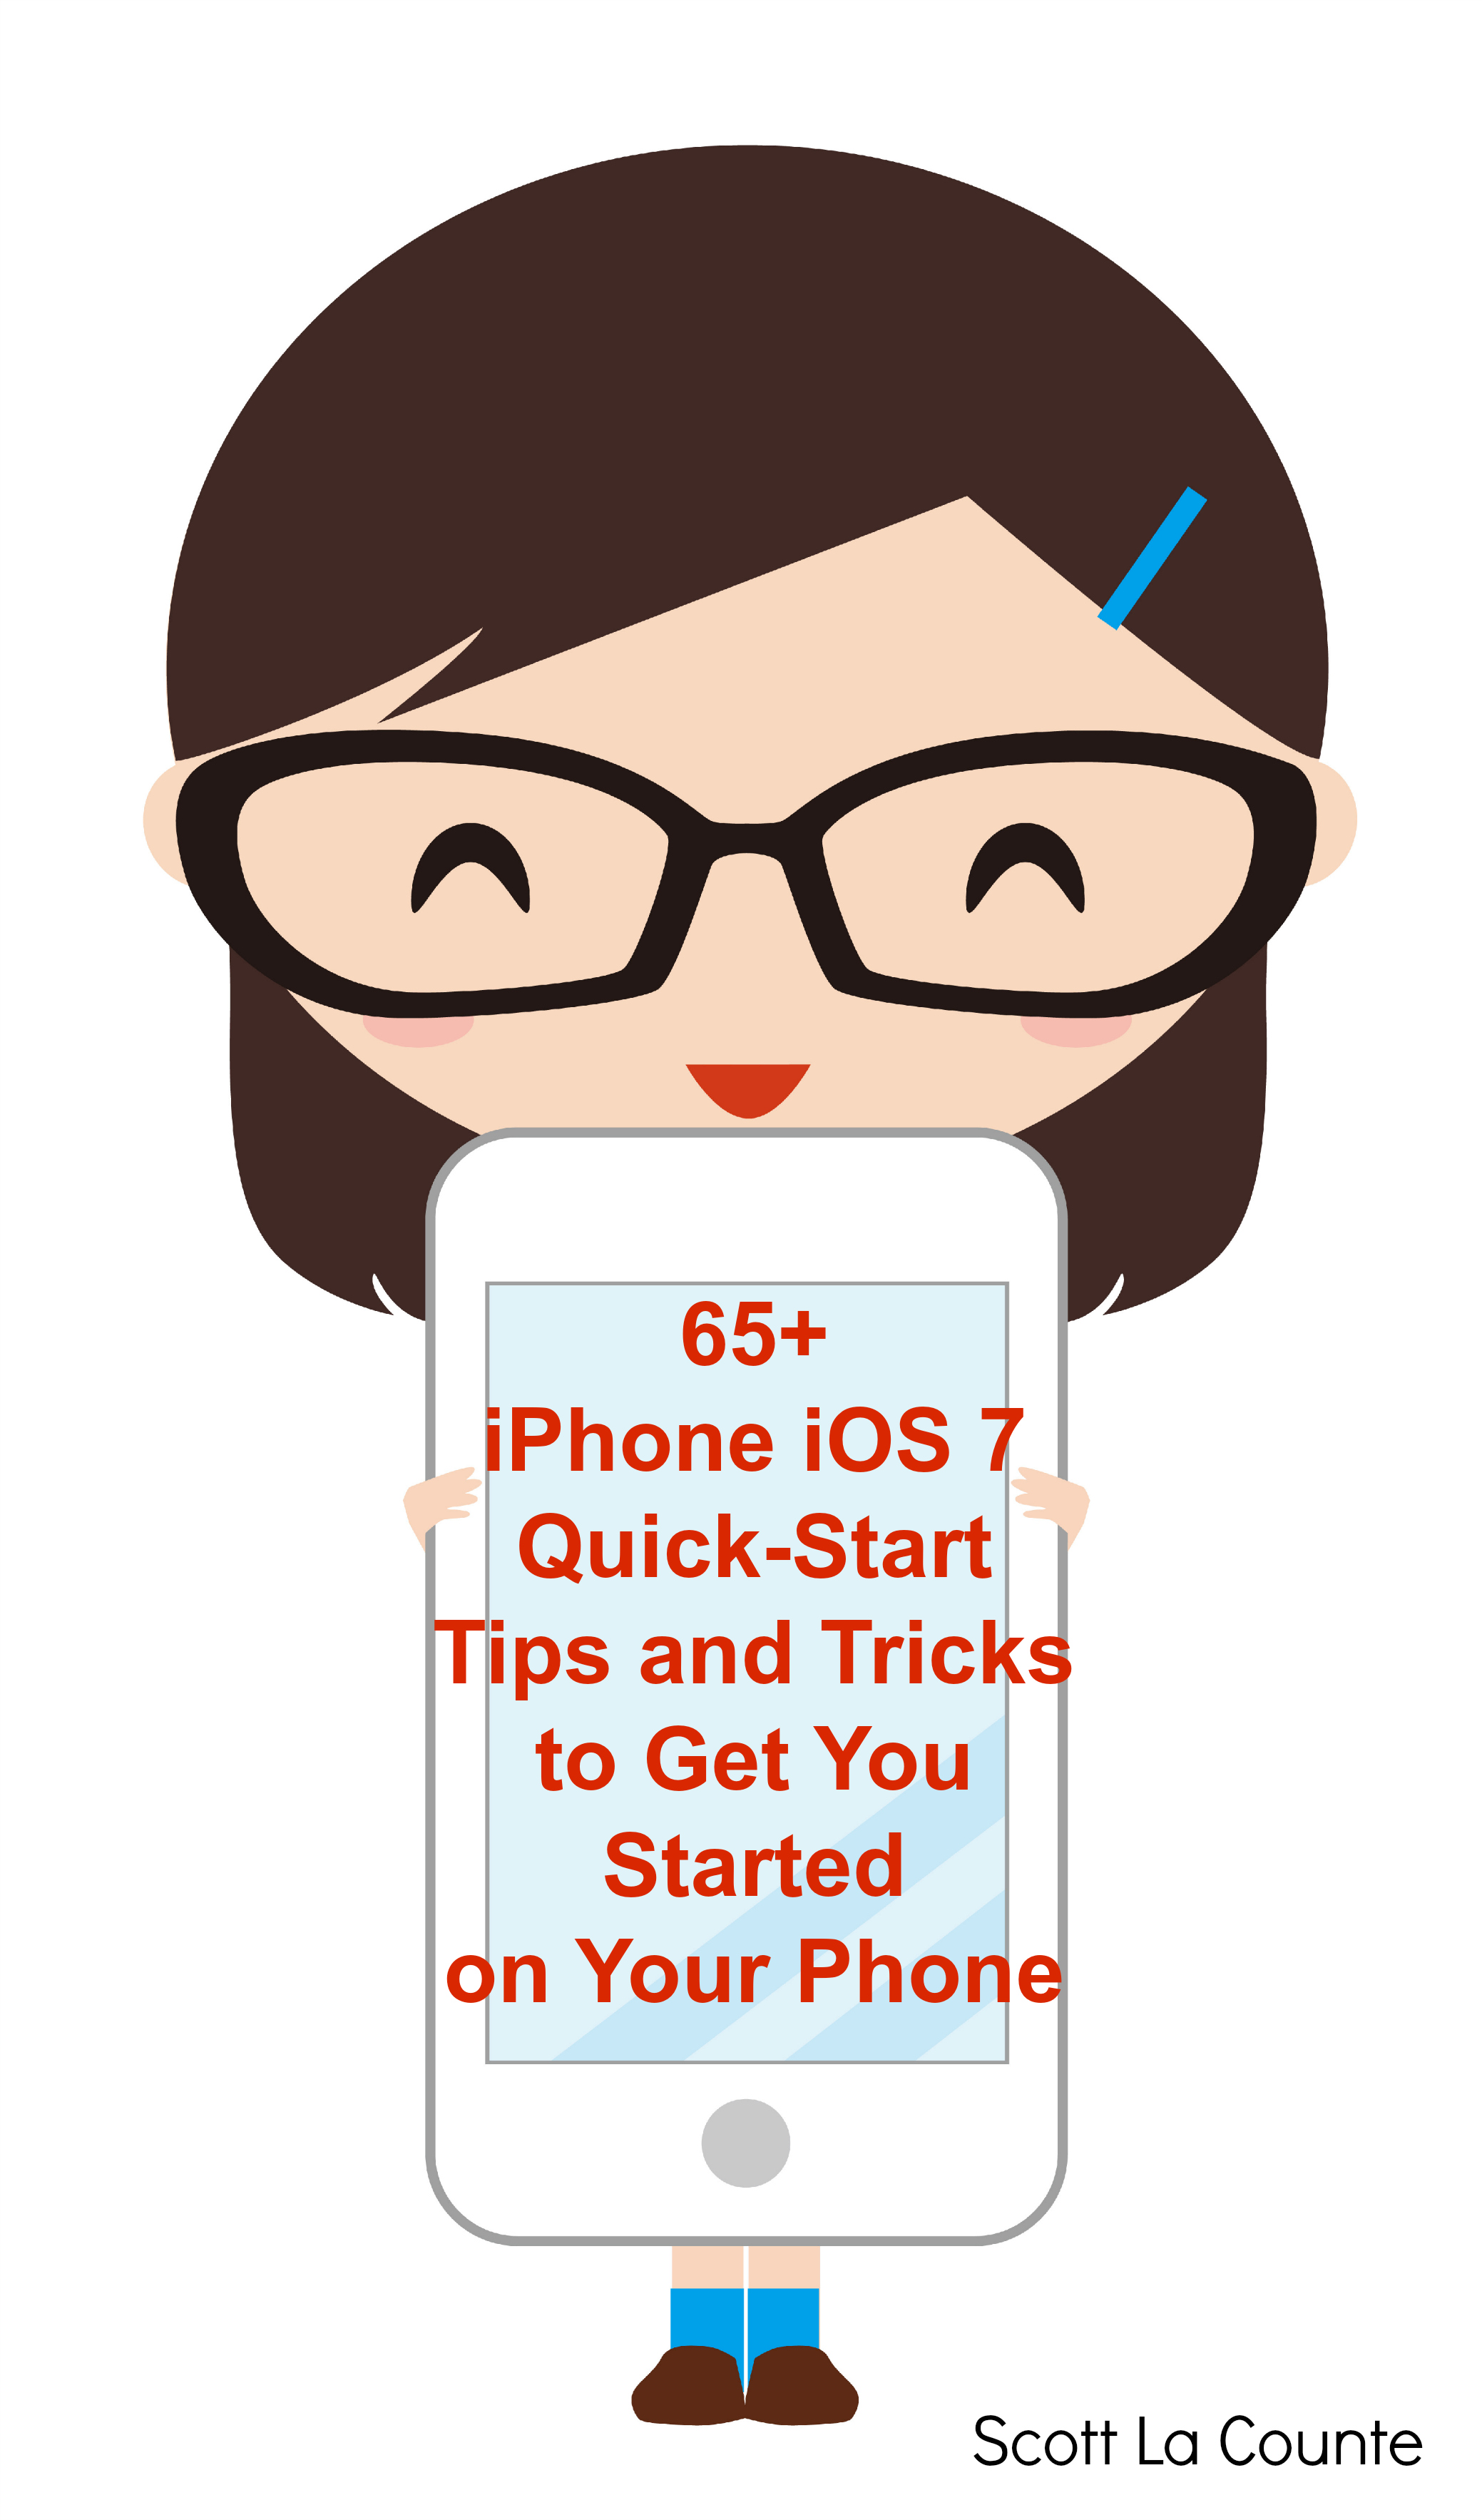 Scott La Counte - 65+ iPhone iOS 7 Quick-Start Tips and Tricks to Get You Started with Your Phone